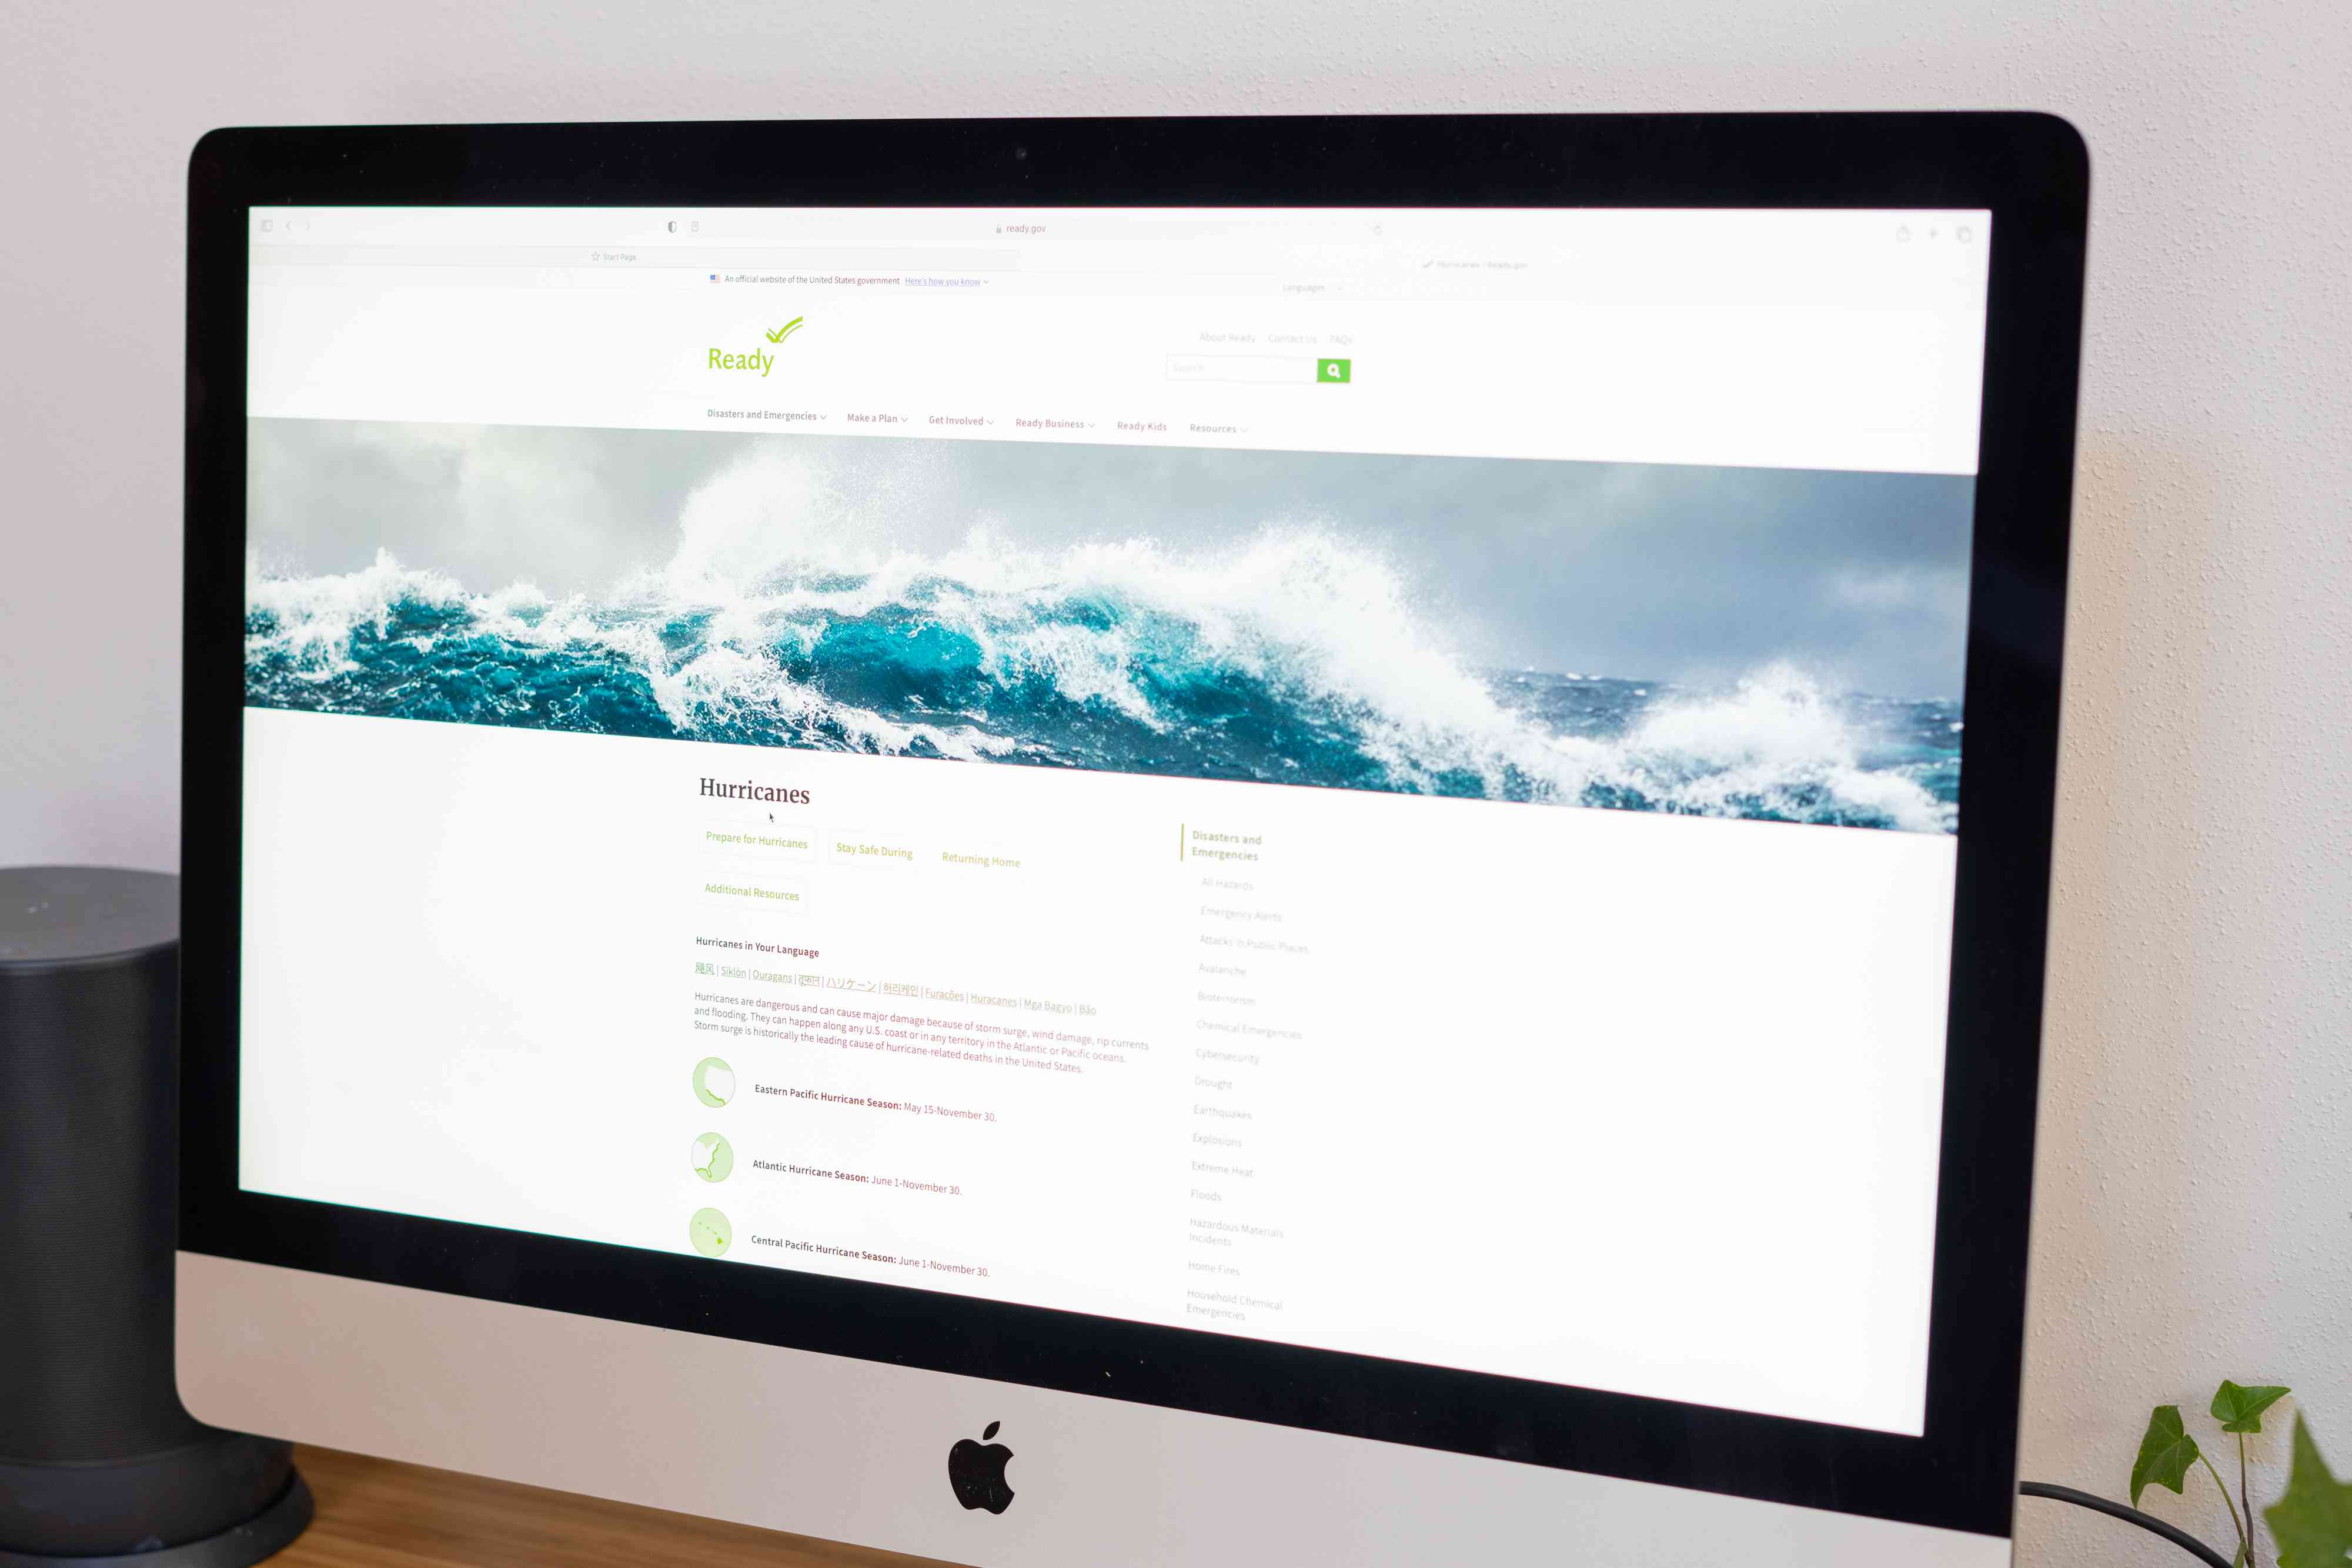 Computer monitor with website for storm preparedness